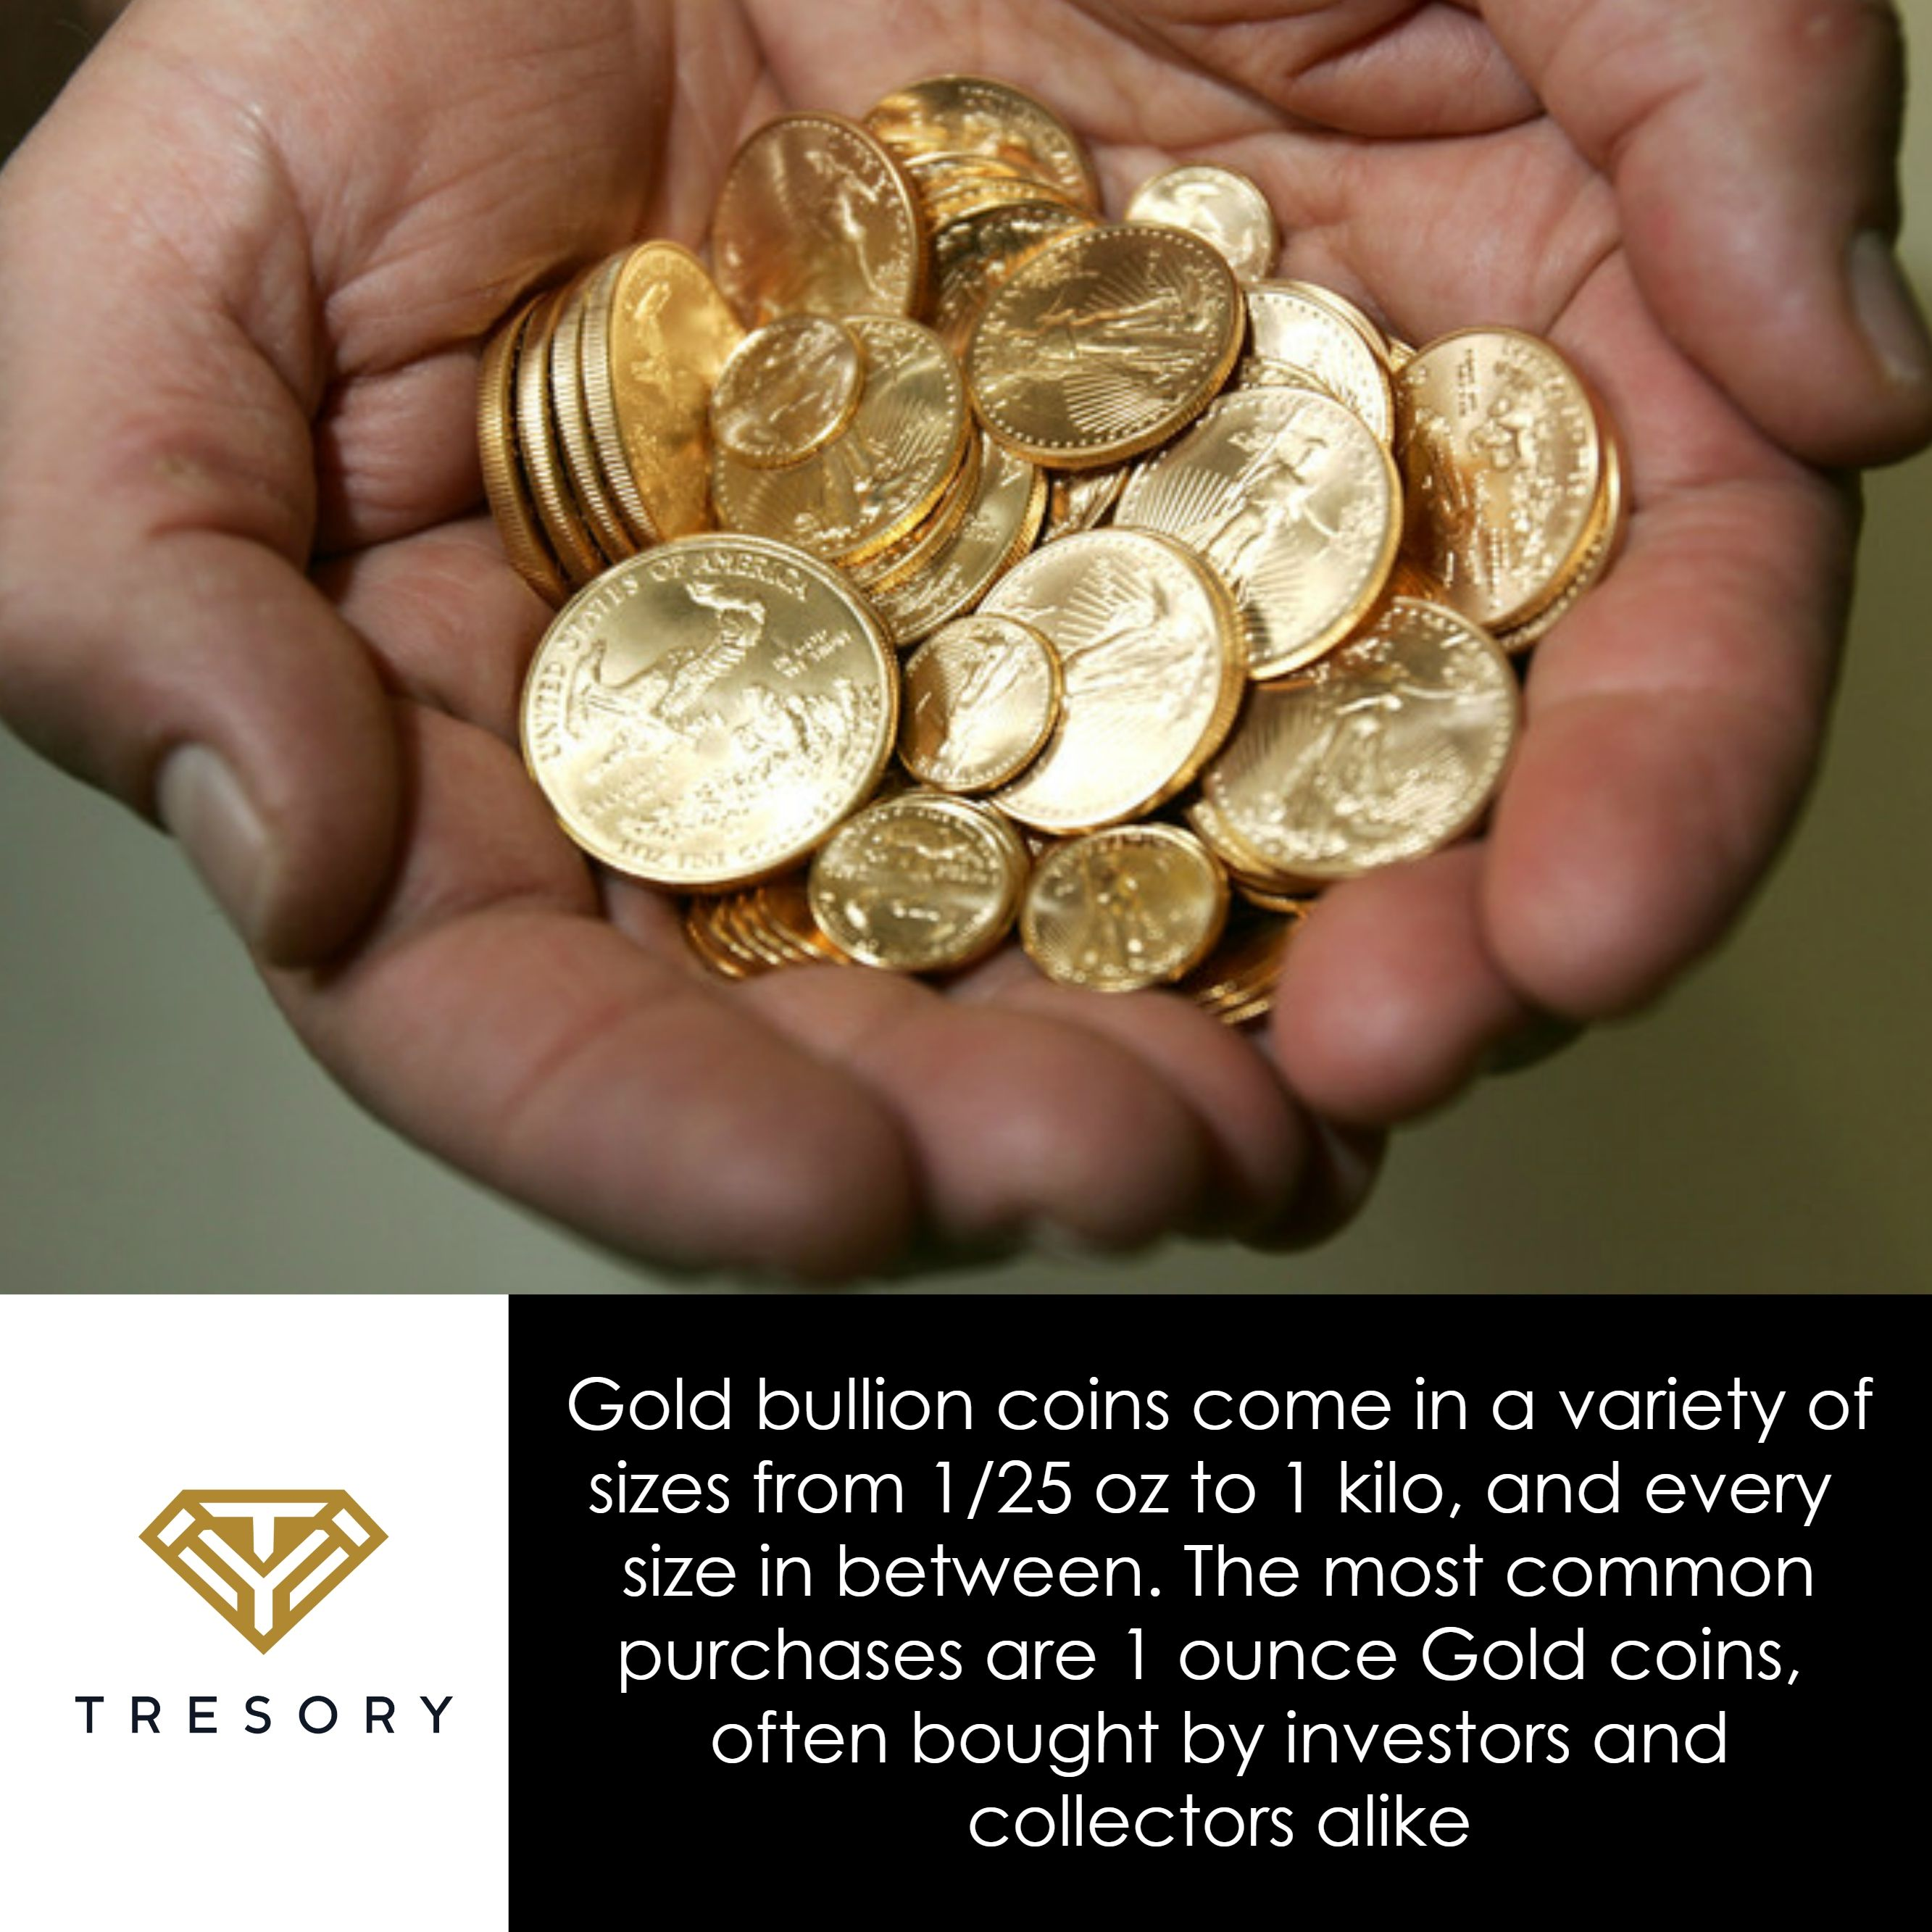 Gold Bullion Coins Come In A Variety Of